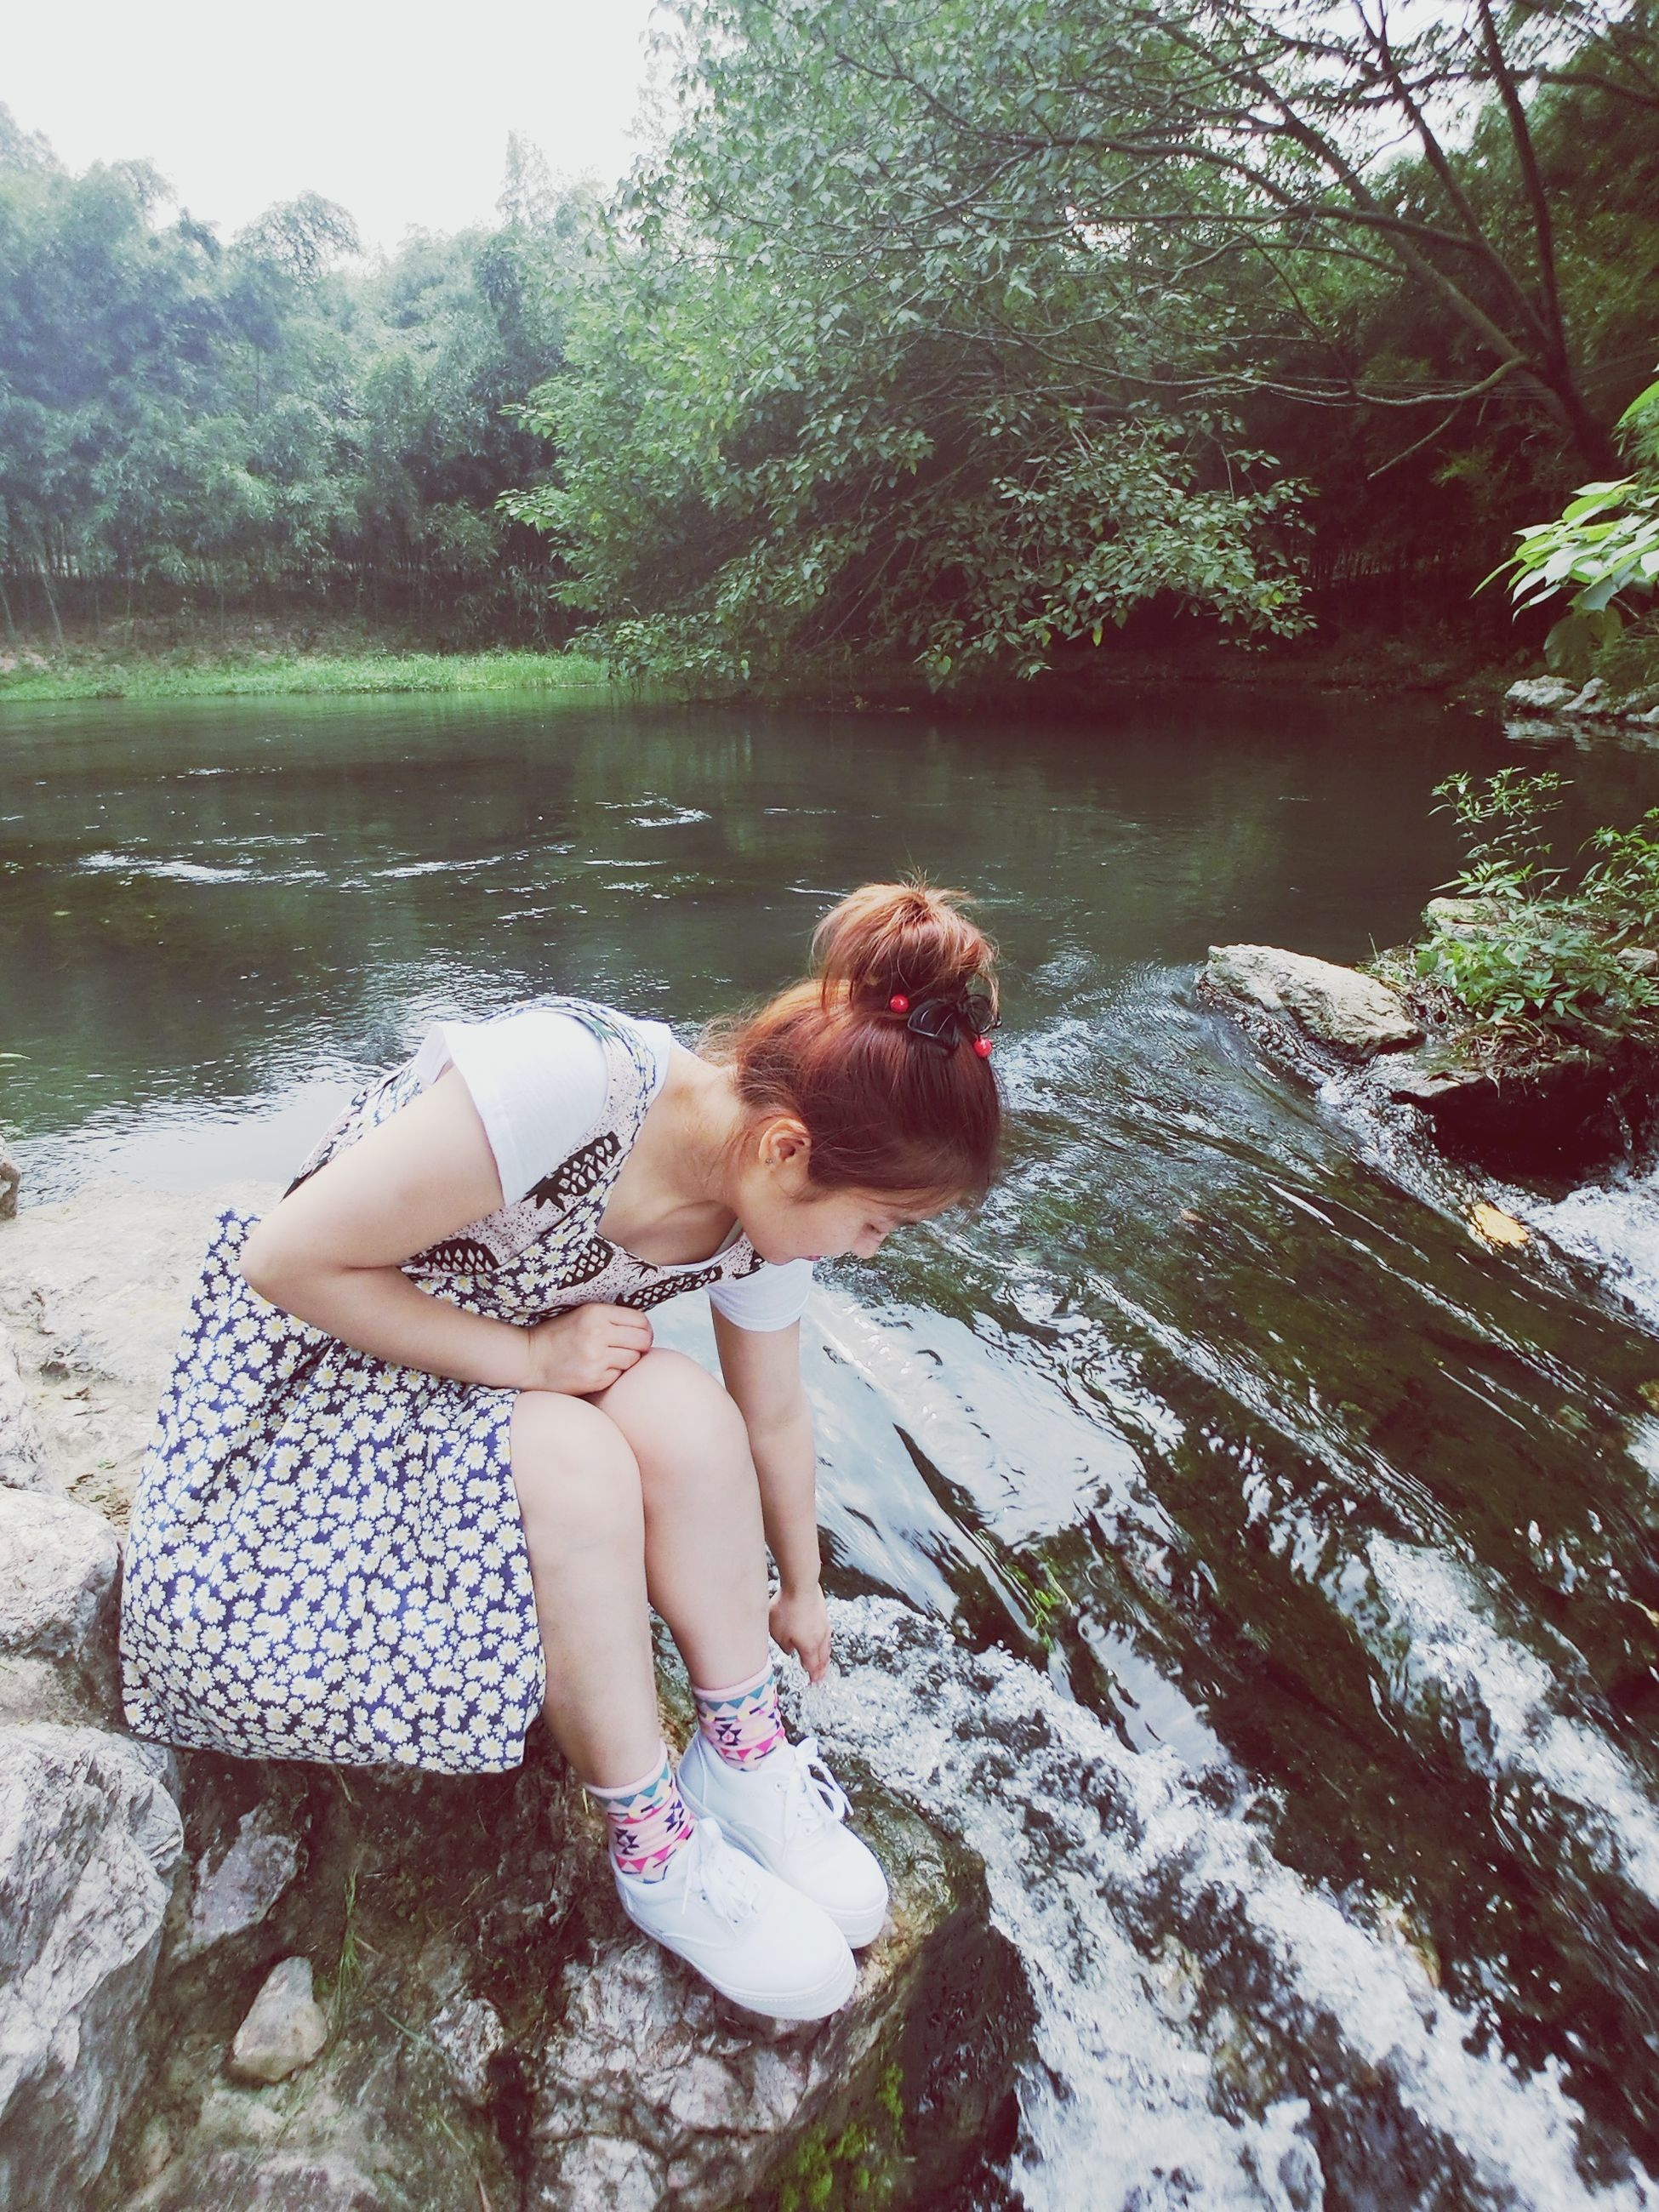 water, tree, leisure activity, lifestyles, person, full length, childhood, young women, young adult, girls, relaxation, sitting, lake, elementary age, casual clothing, nature, three quarter length, tranquility